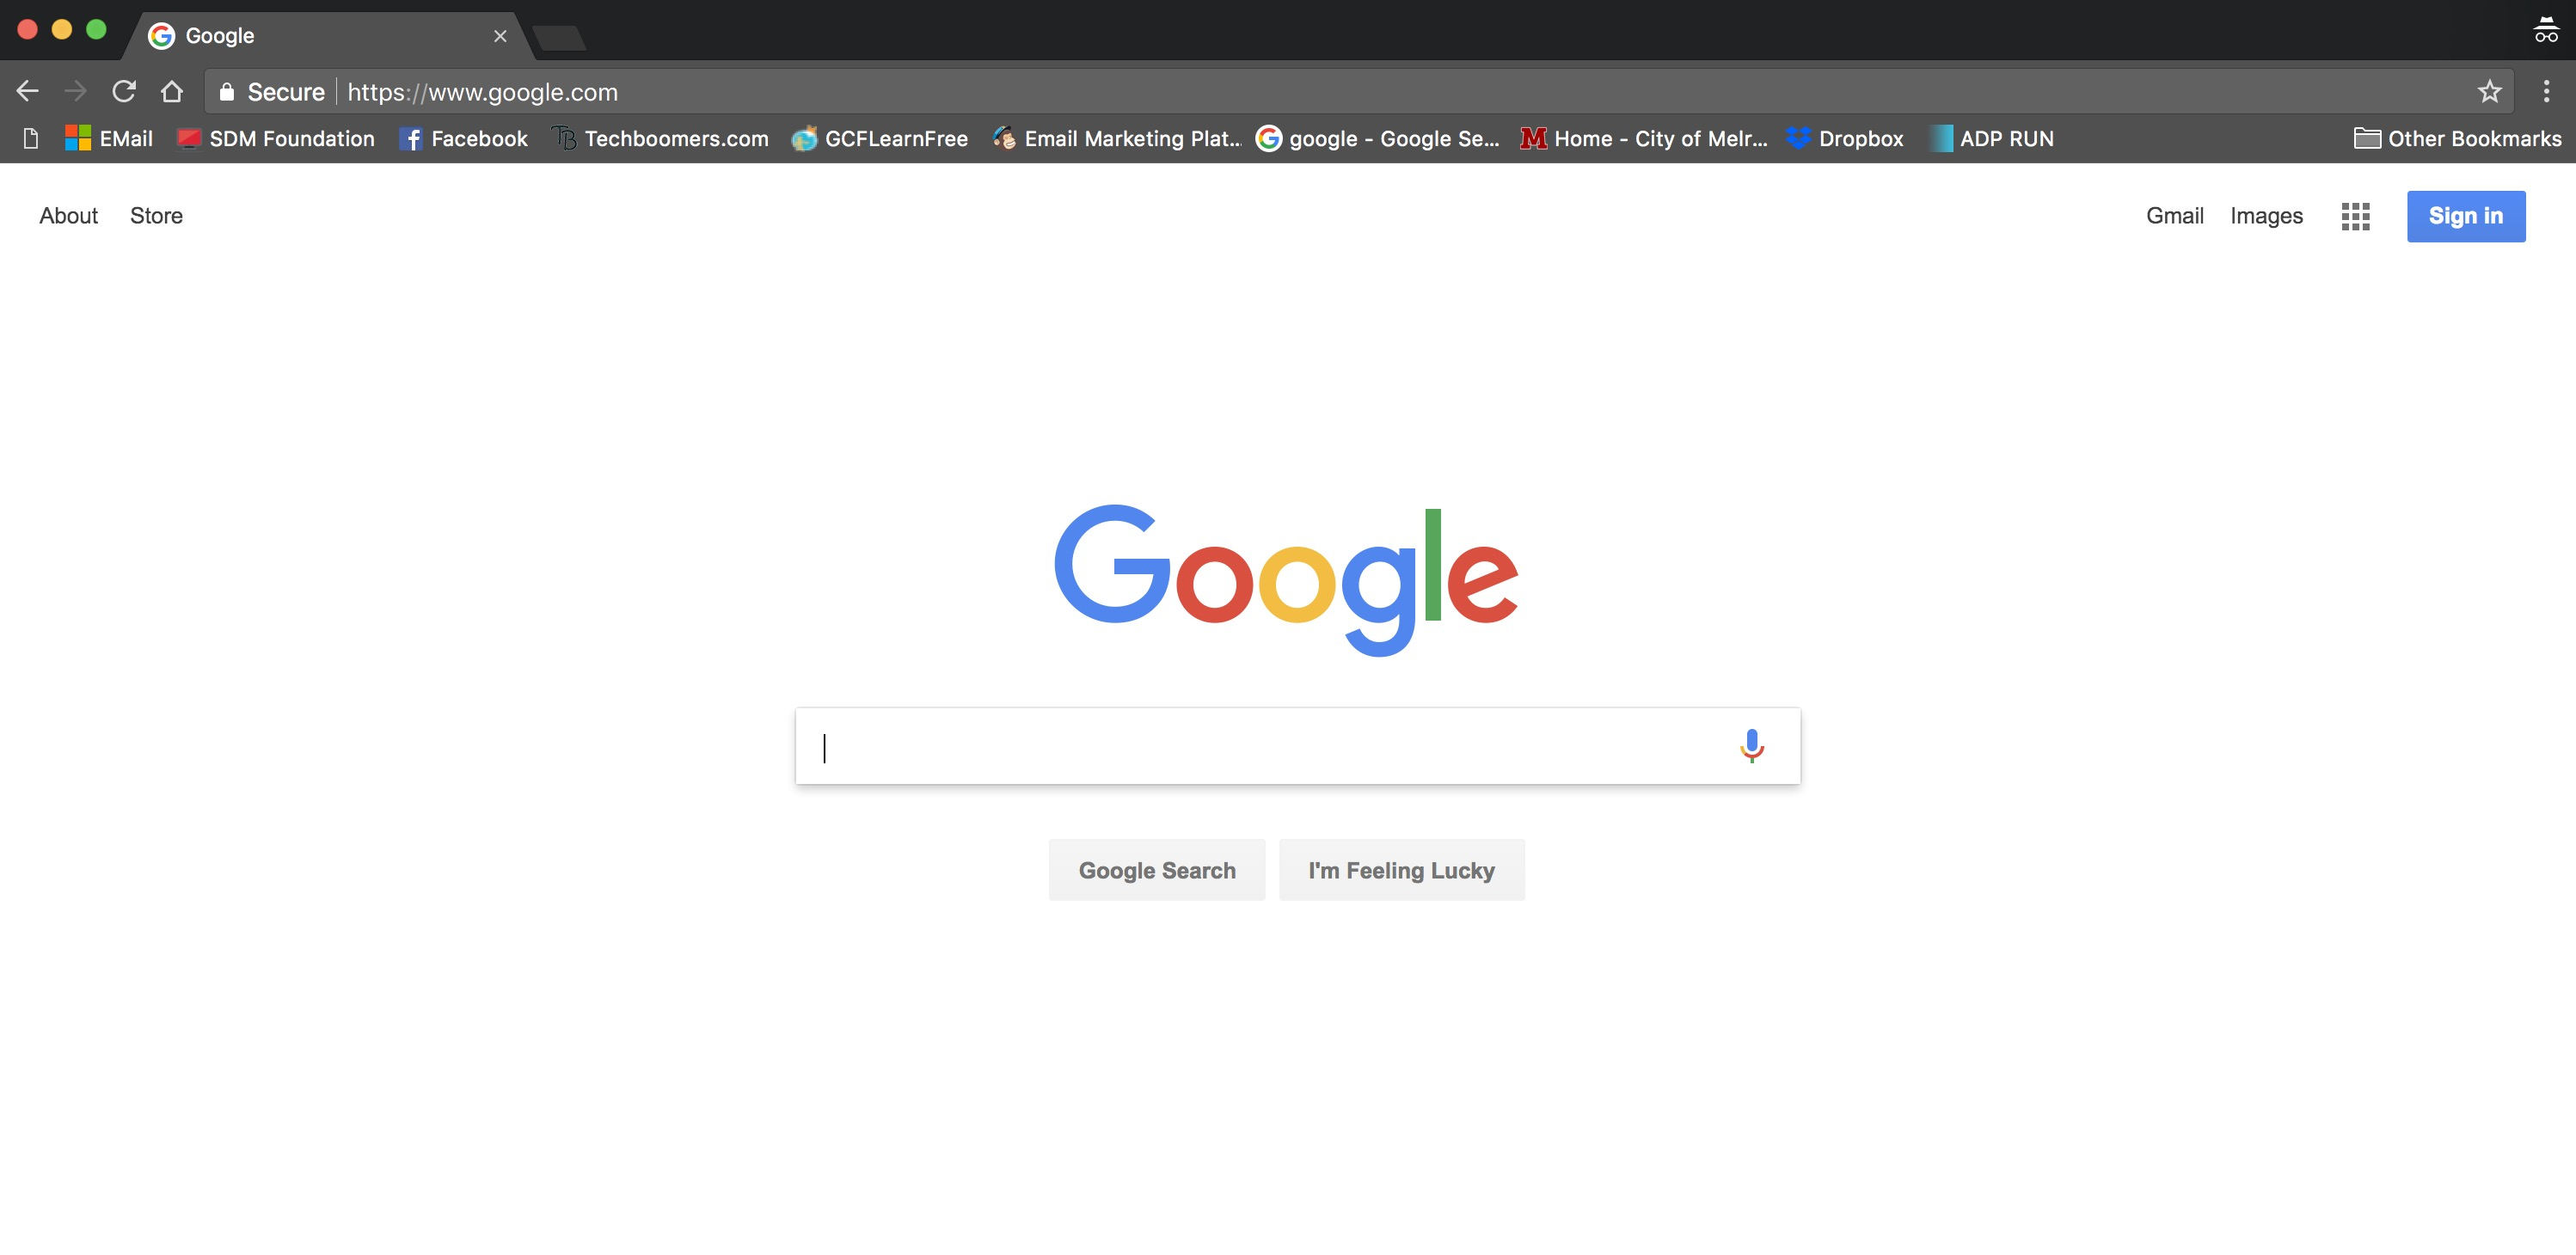 How to search using the chrome browser - SDM Foundation